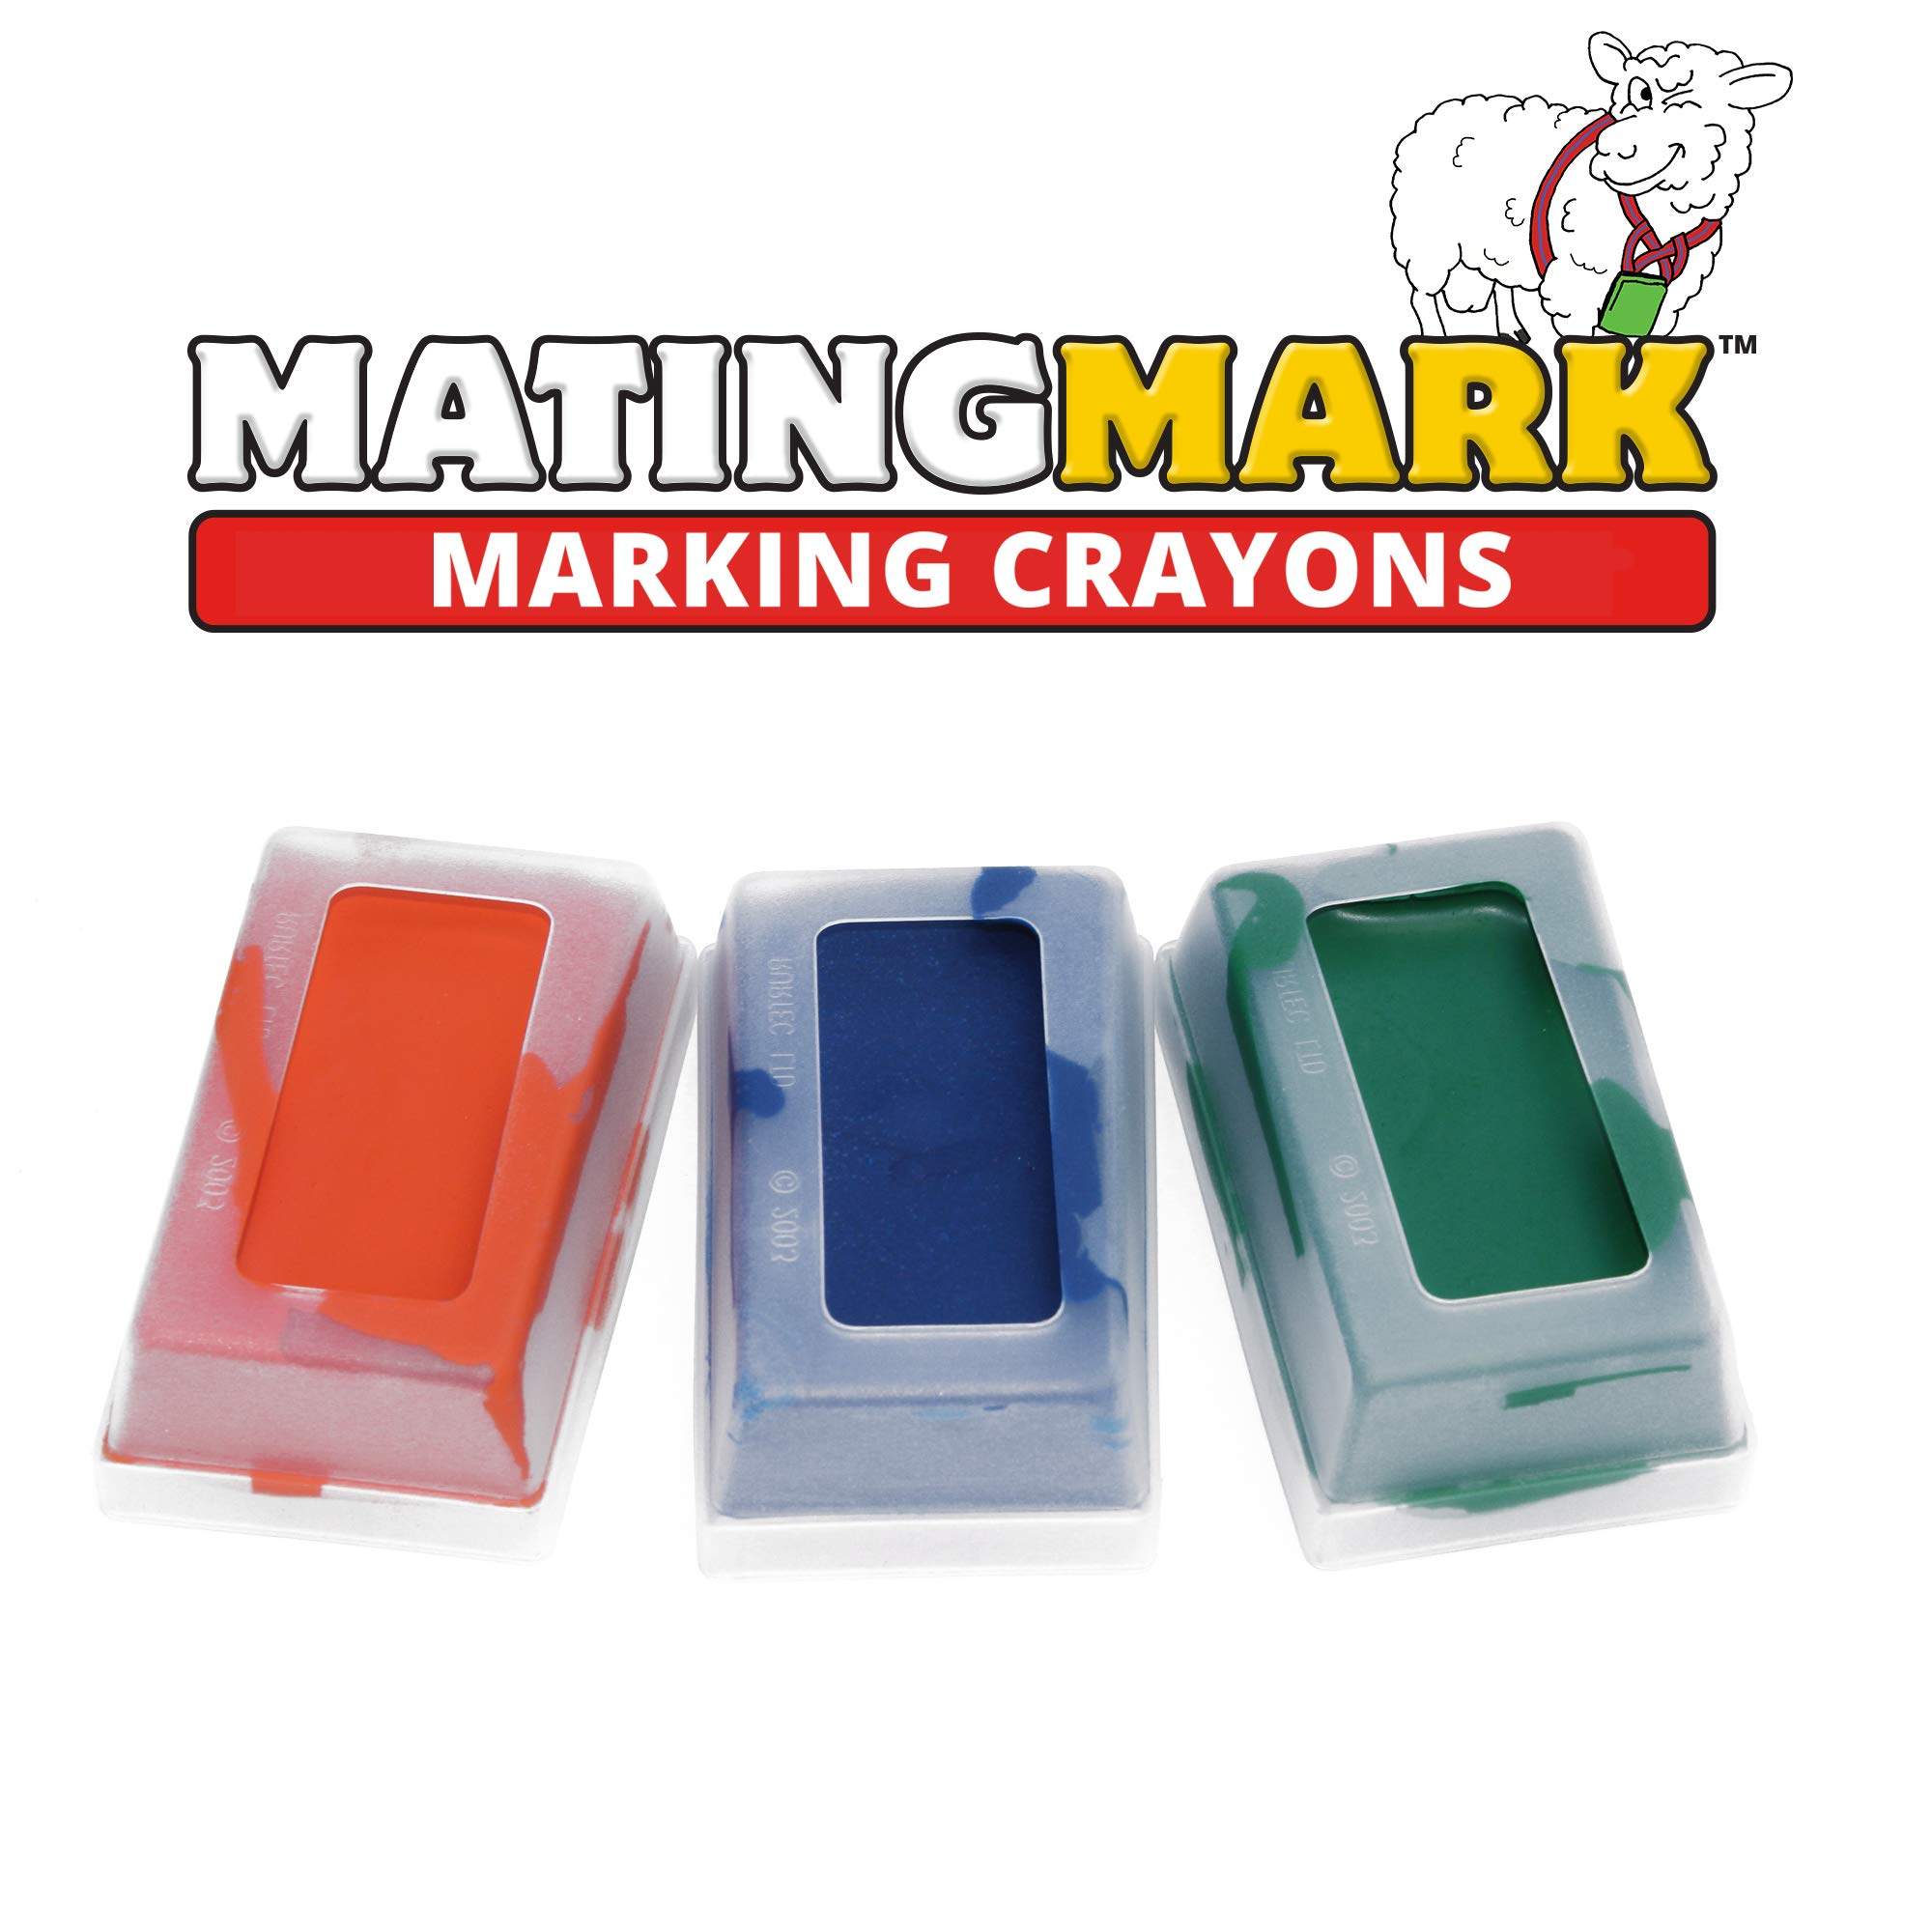 MATINGMARK Sheep & Goat Mating Crayon Block Marker for Ram Breeding/Marking Harness by Rurtec, 3 Pack (MILD Temperature) Orange, Blue, Green, Made in New Zealand